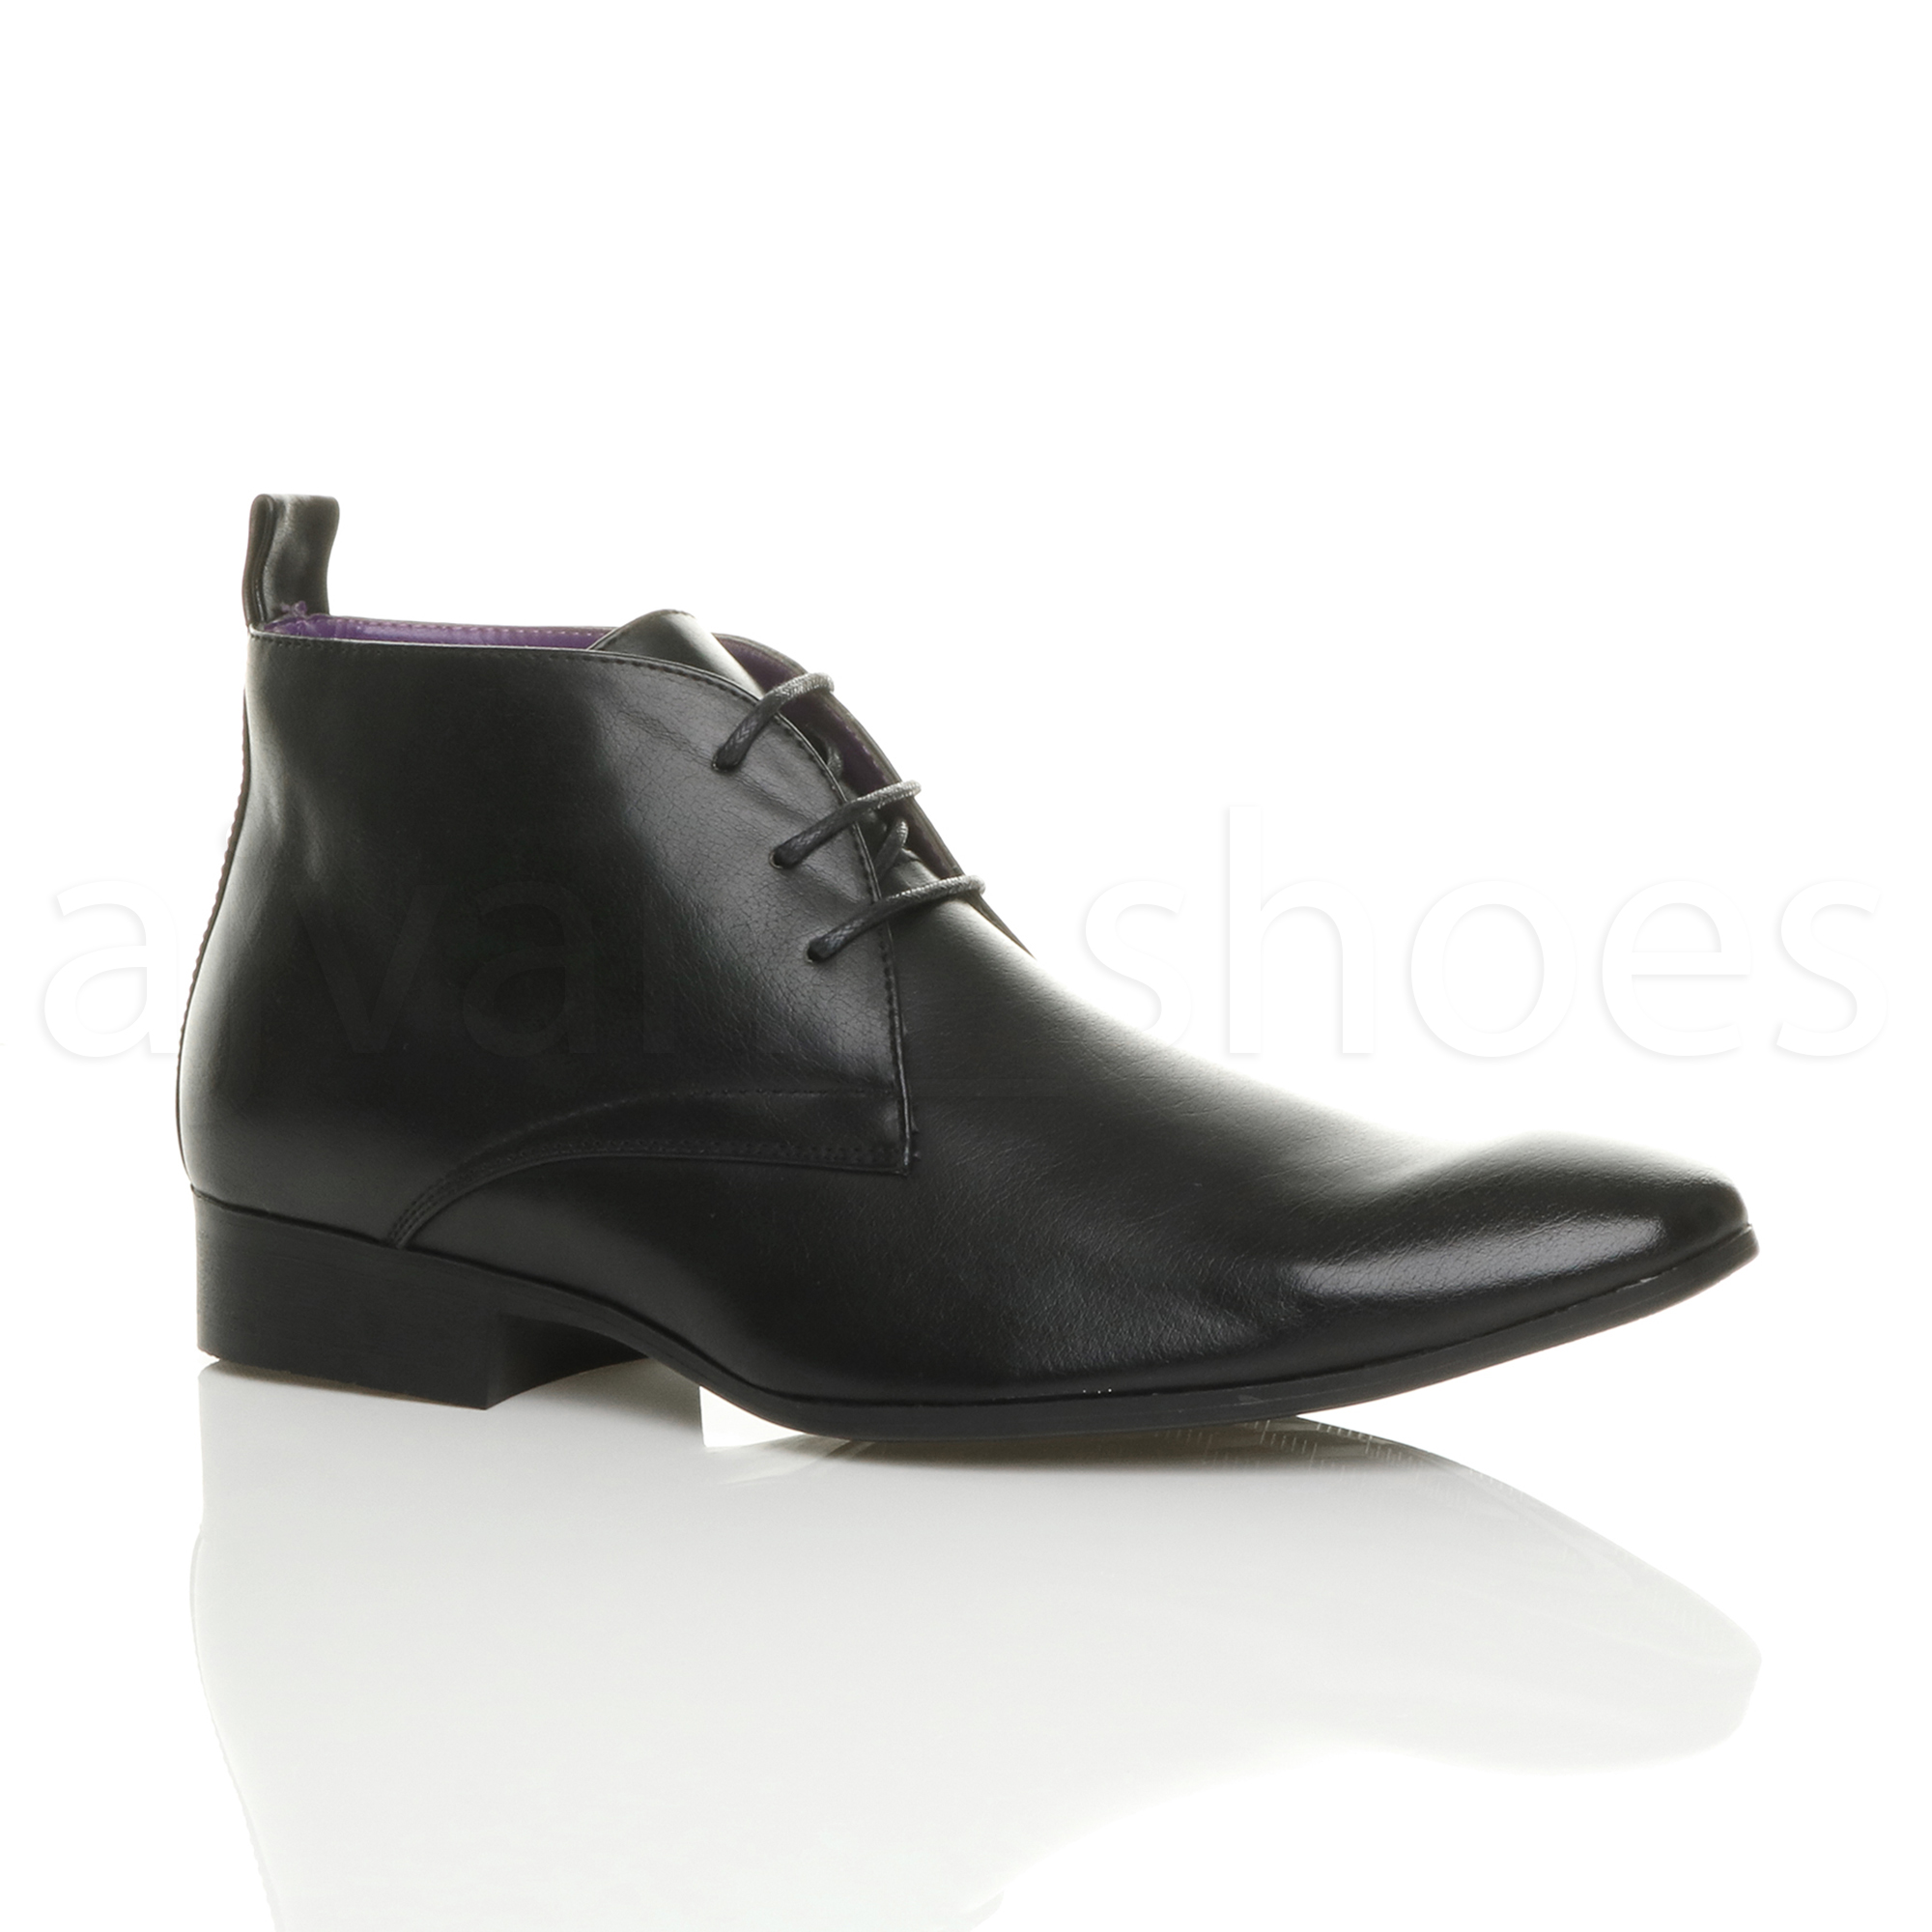 MENS LOW HEEL LACE UP POINTED FORMAL WORK SMART CASUAL SHOES ANKLE BOOTS  SIZE 987211c2f